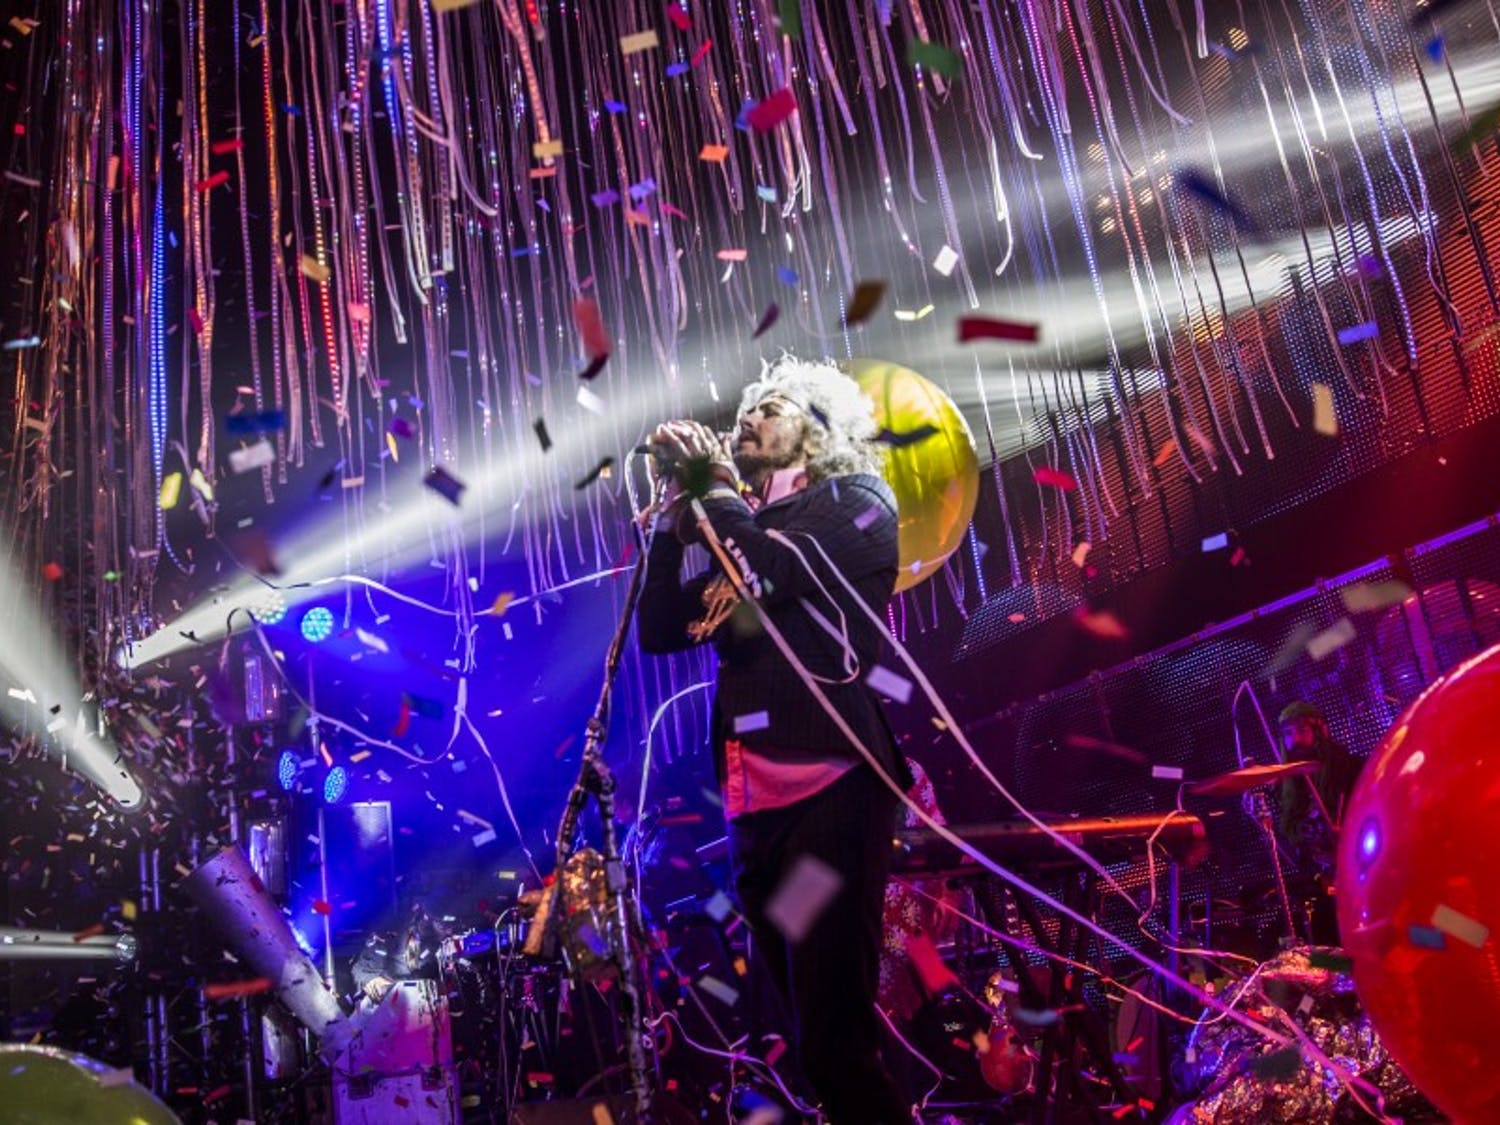 Gallery: The Flaming Lips